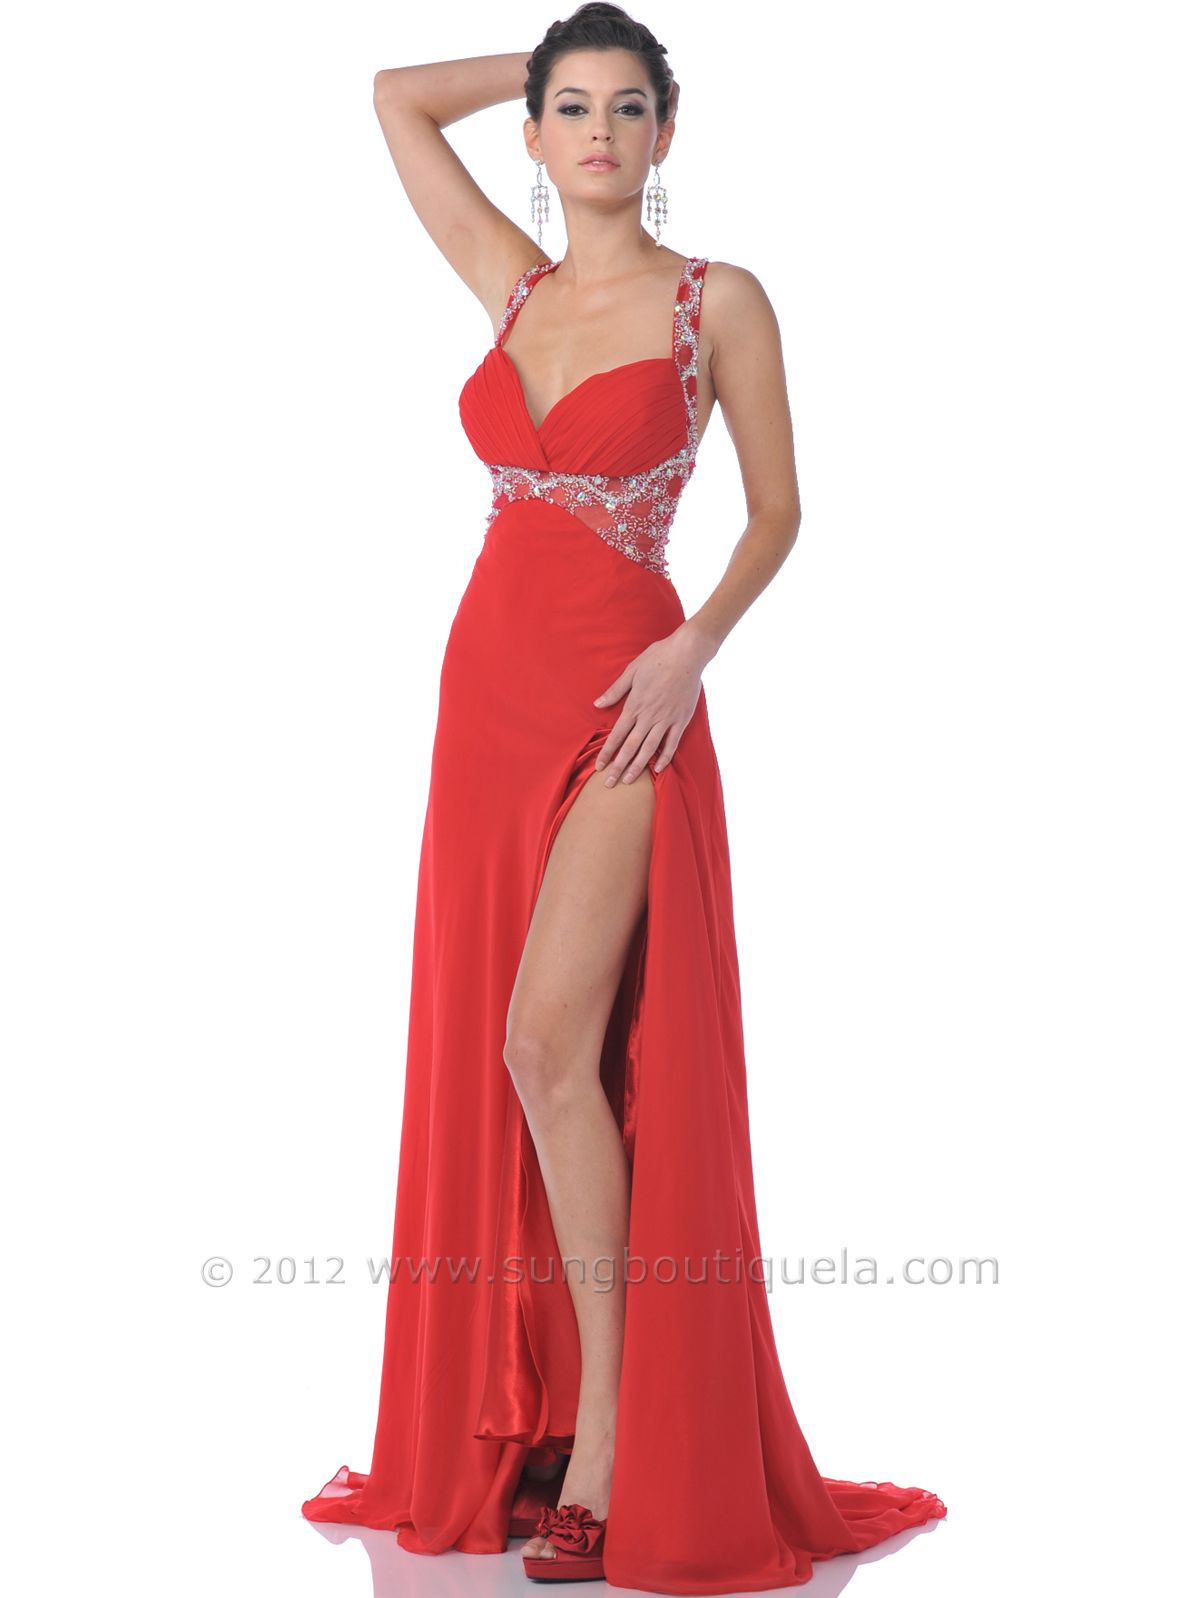 Red Strap Prom Dresses